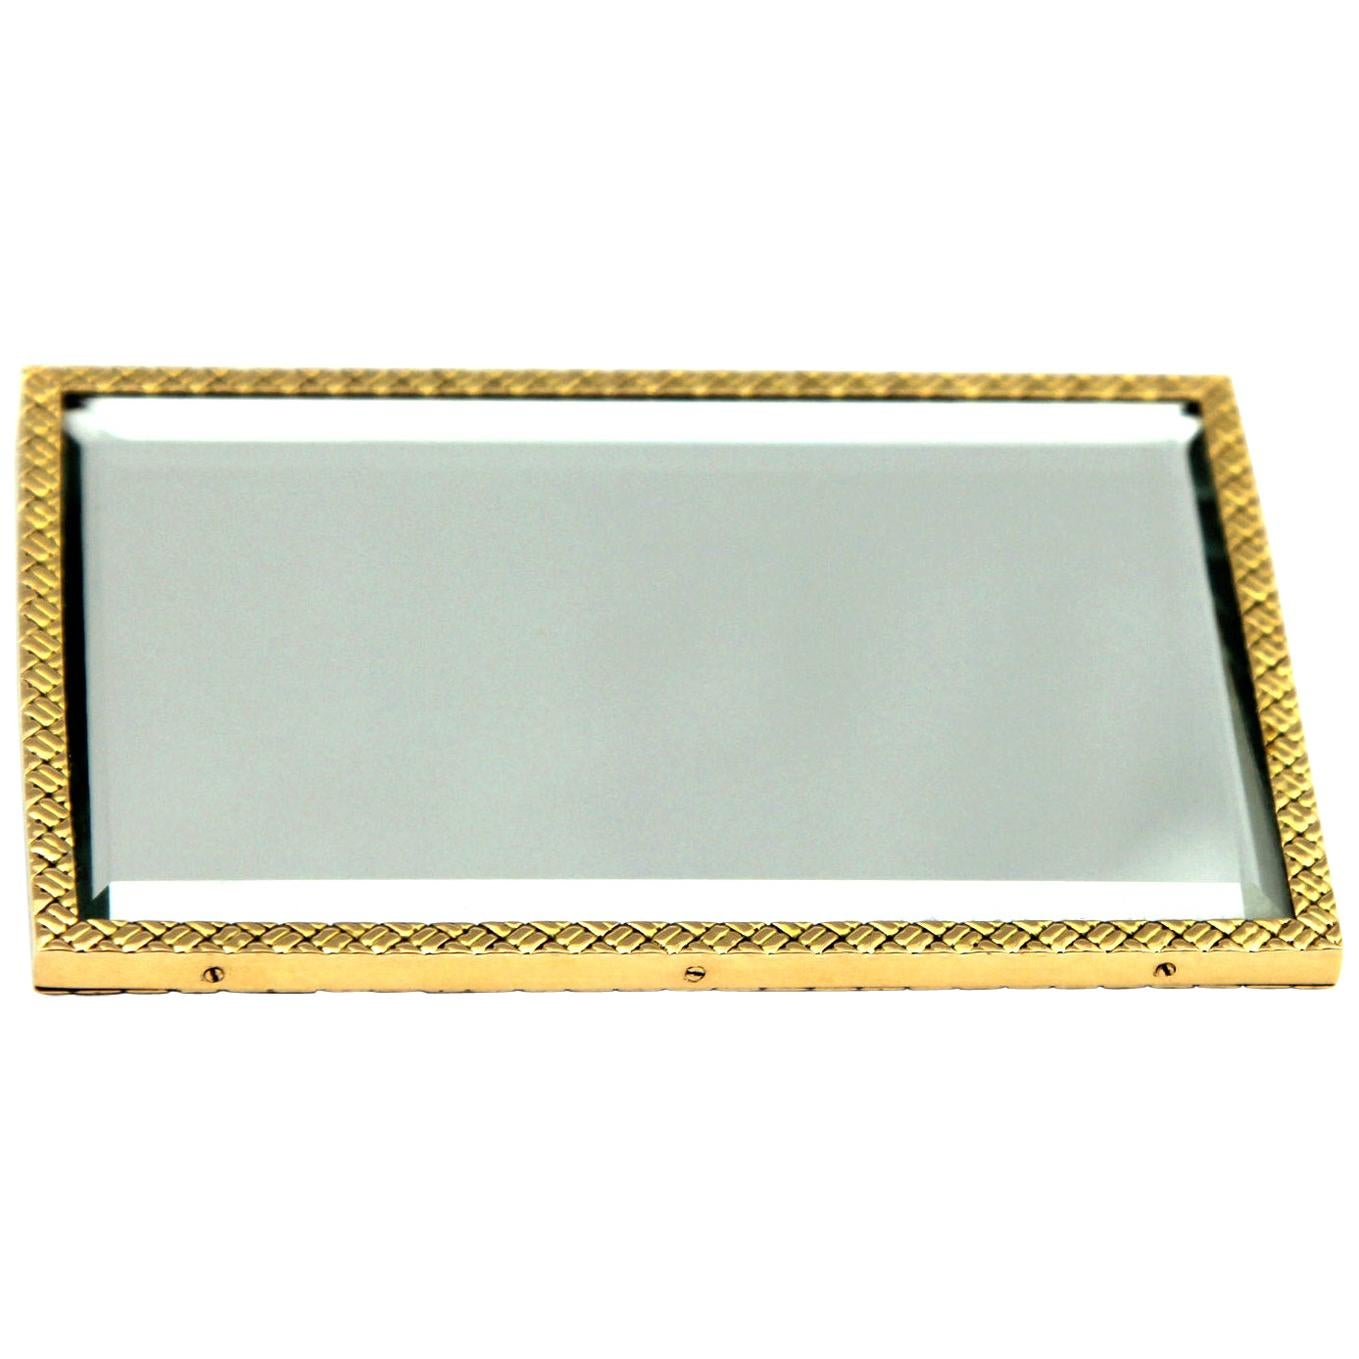 Van Cleef & Arpels, French Mirror in 18 Carat Yellow Gold Patterned Perimeter